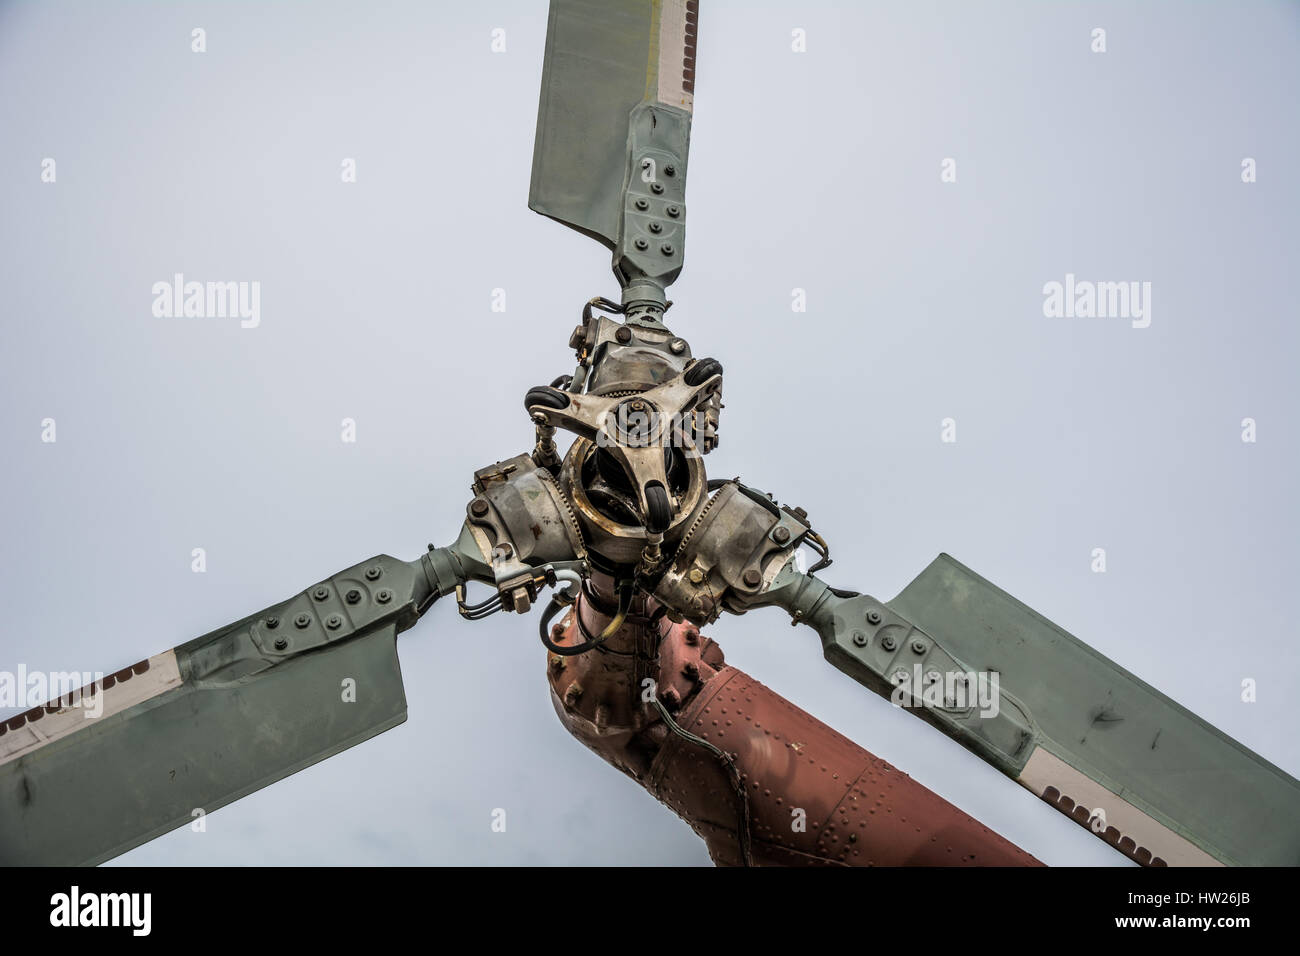 Propeller of old helicopter - Stock Image